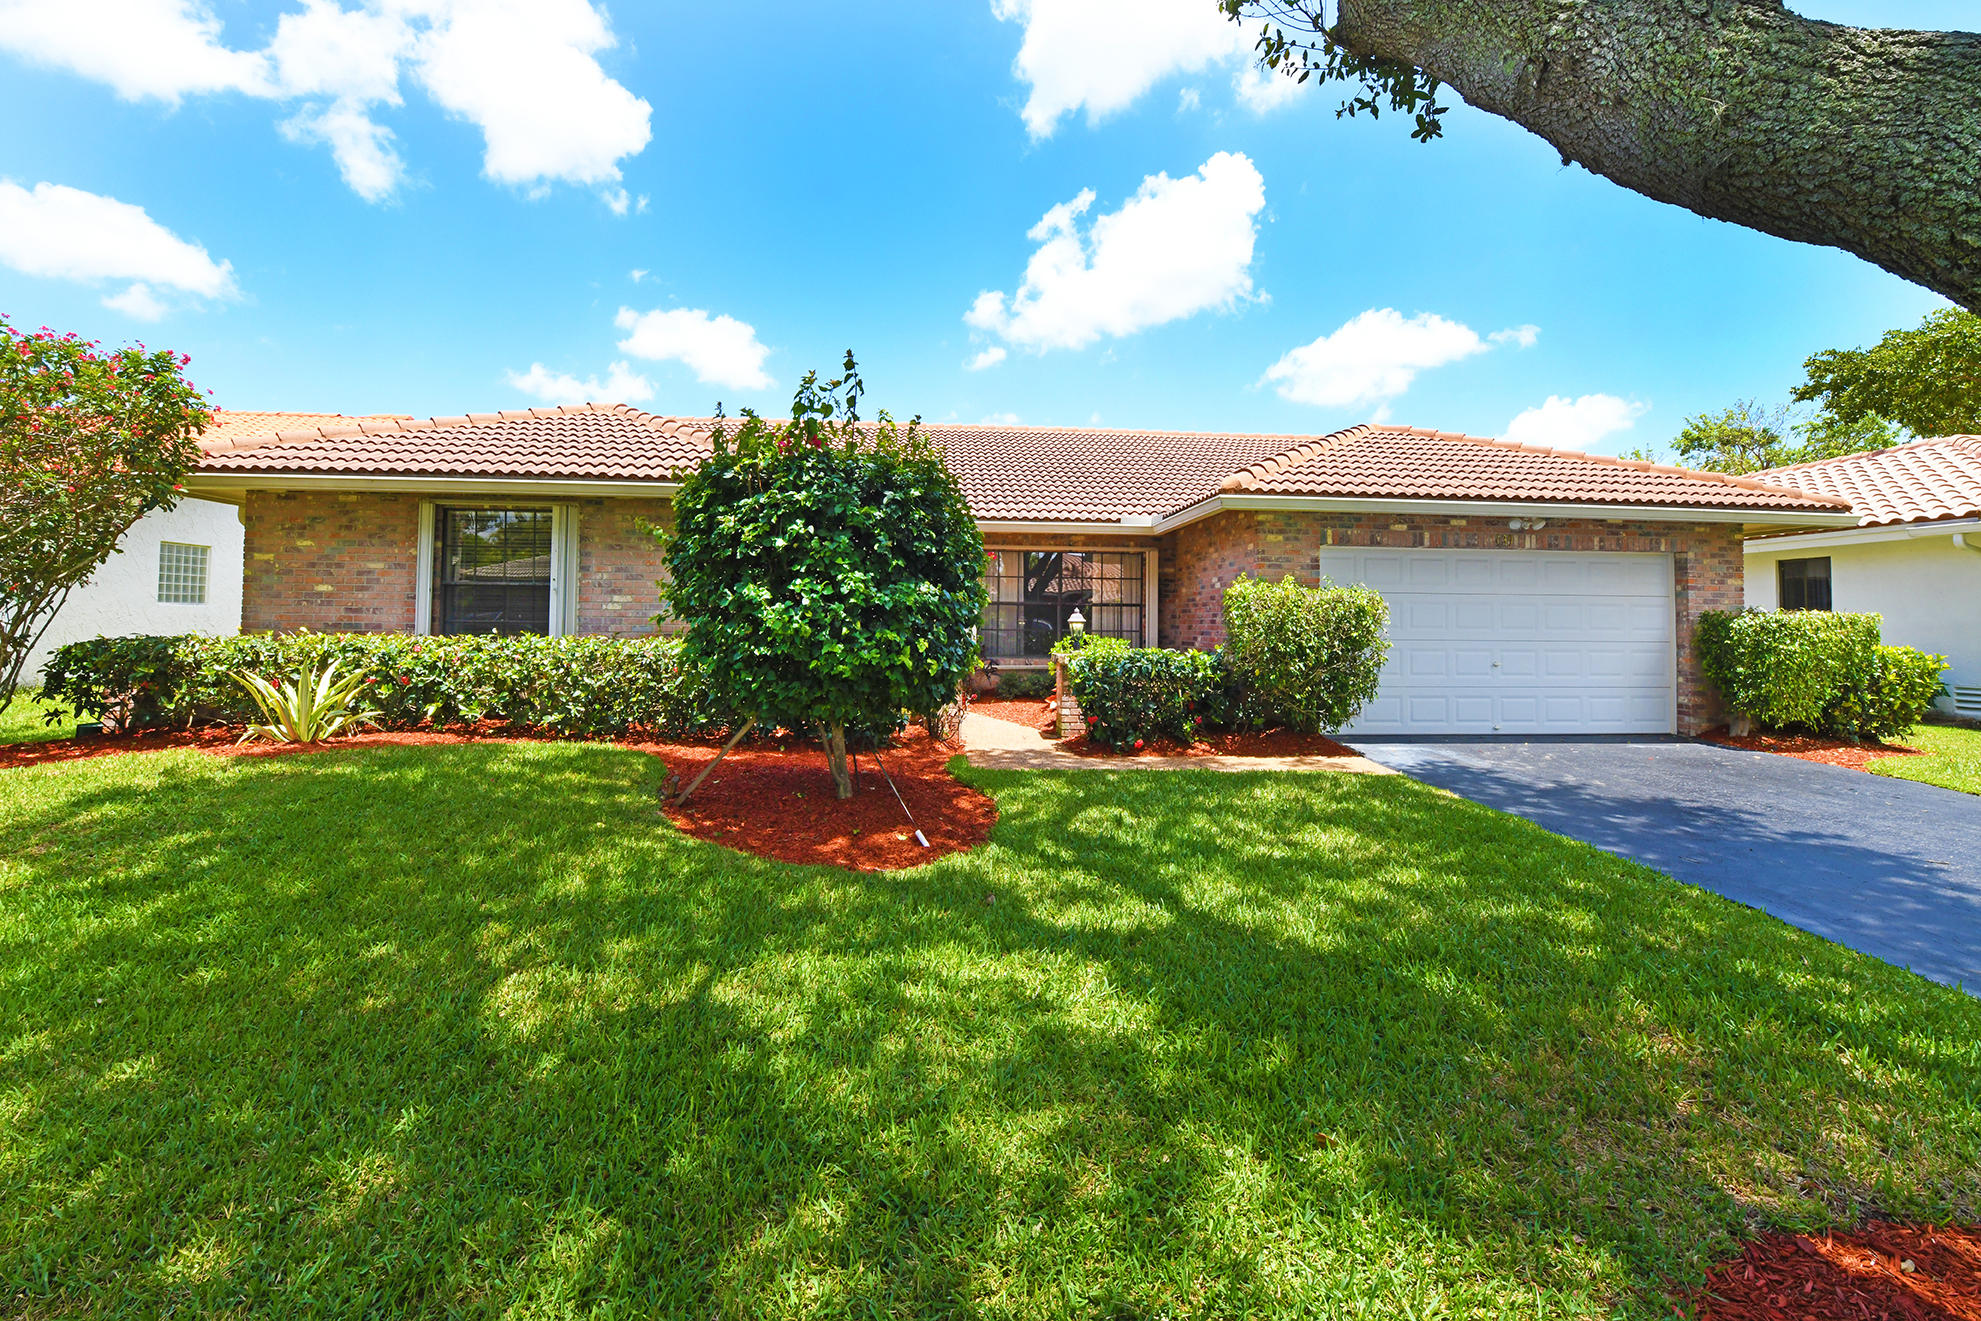 639 NW 110th Avenue - Coral Springs, Florida